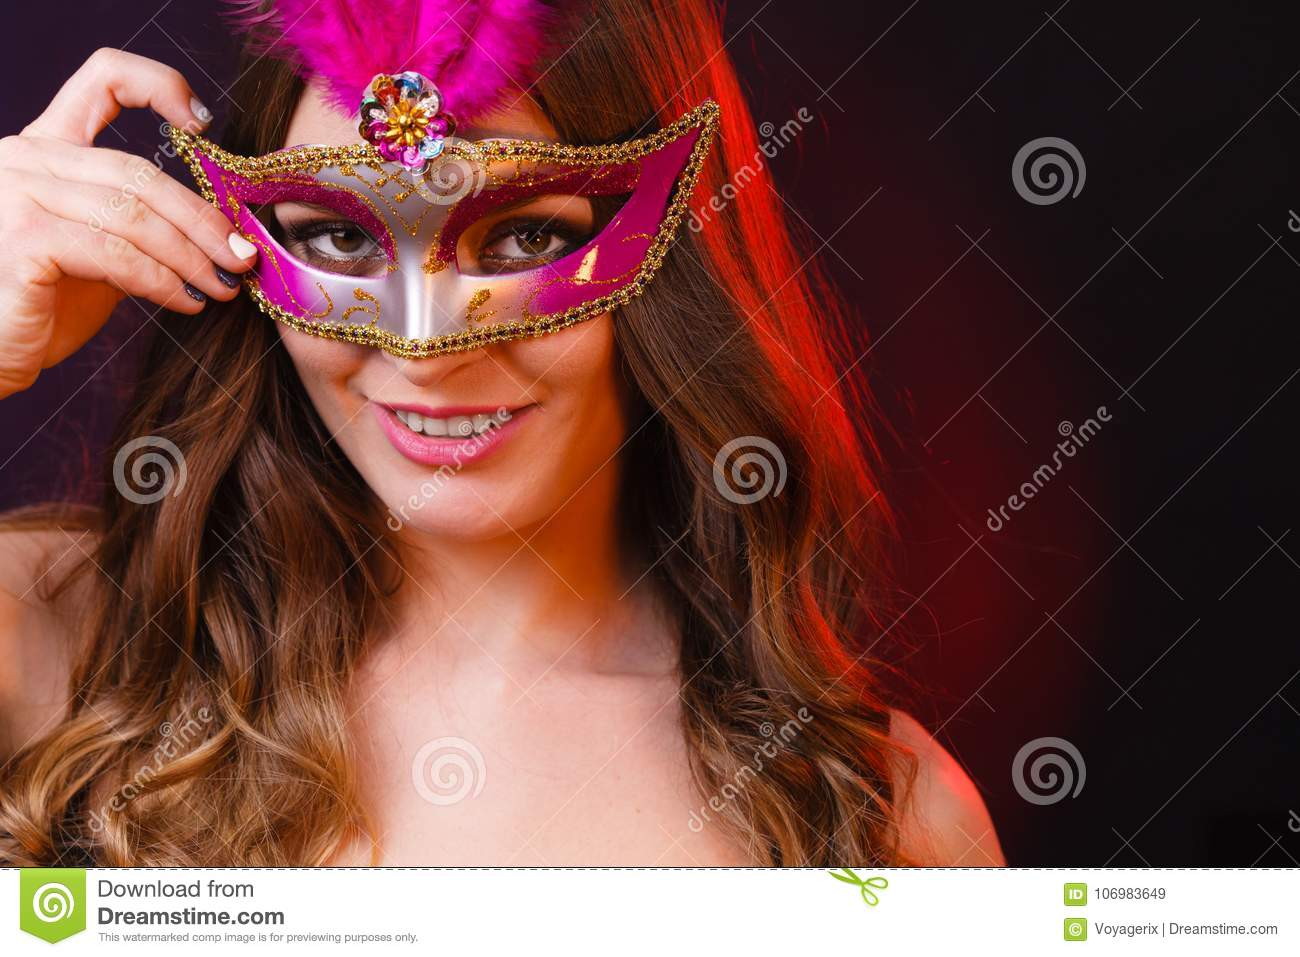 c089b29cdebb Holidays, people and celebration concept. Closeup woman face with carnival  pink feather mask on dark background.